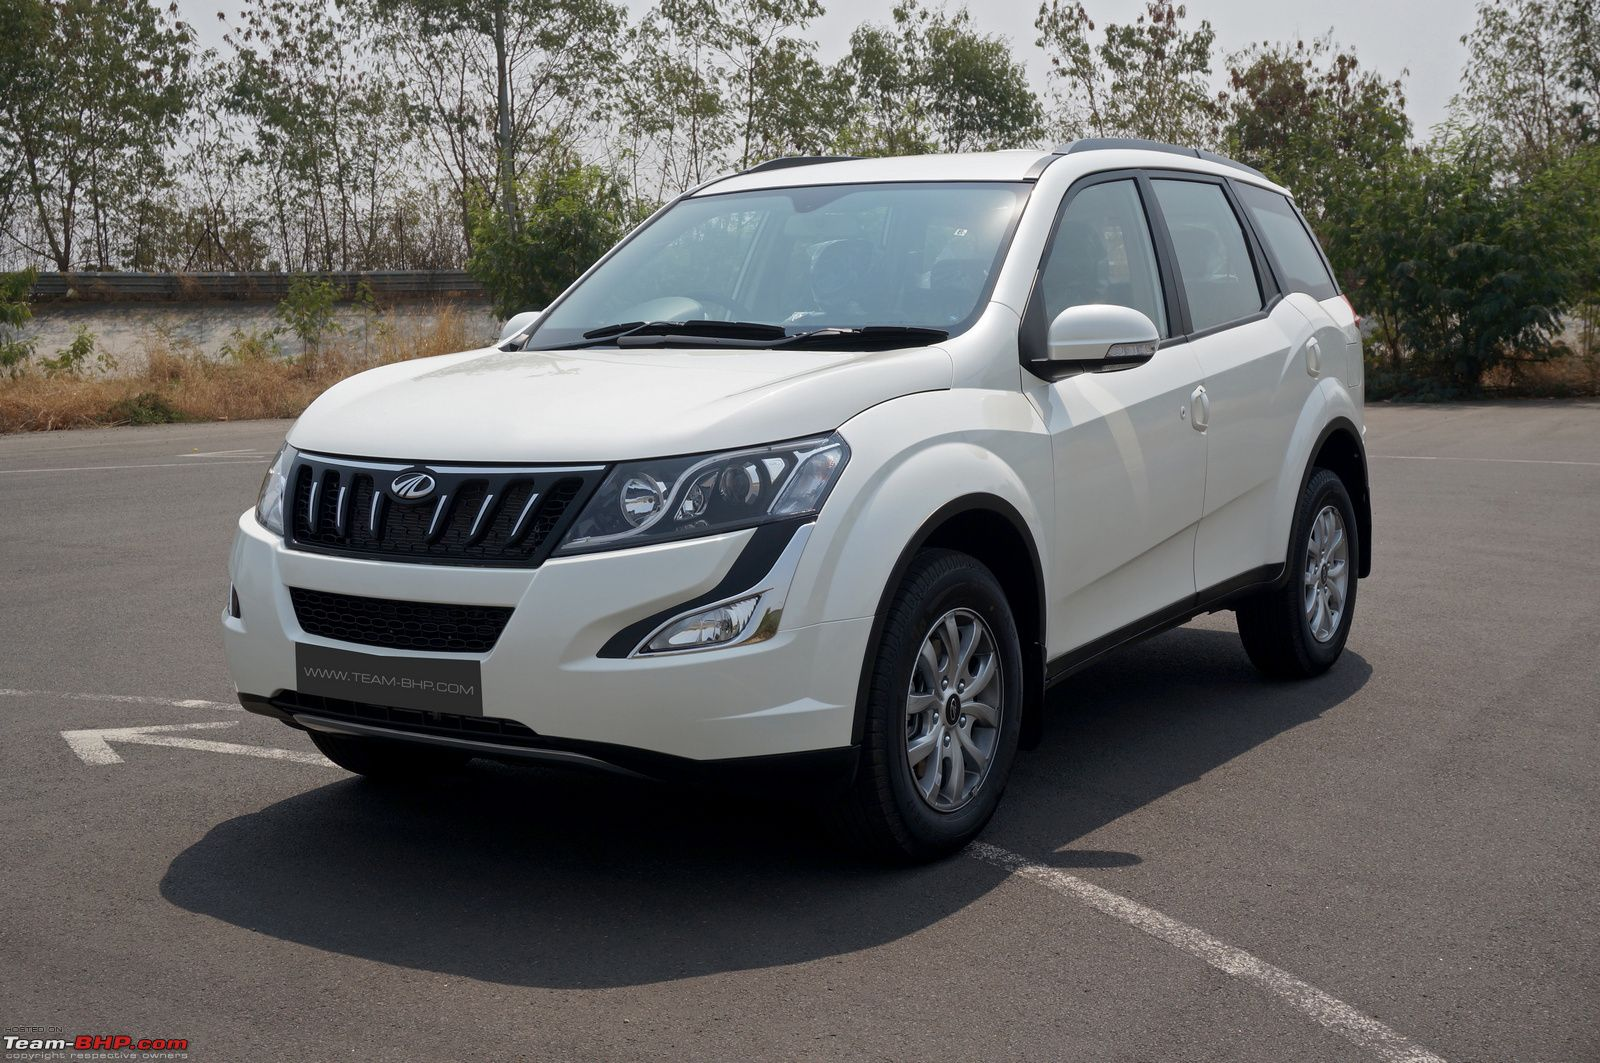 Sell Used Mahindra XUV500 in India by following 3 fast